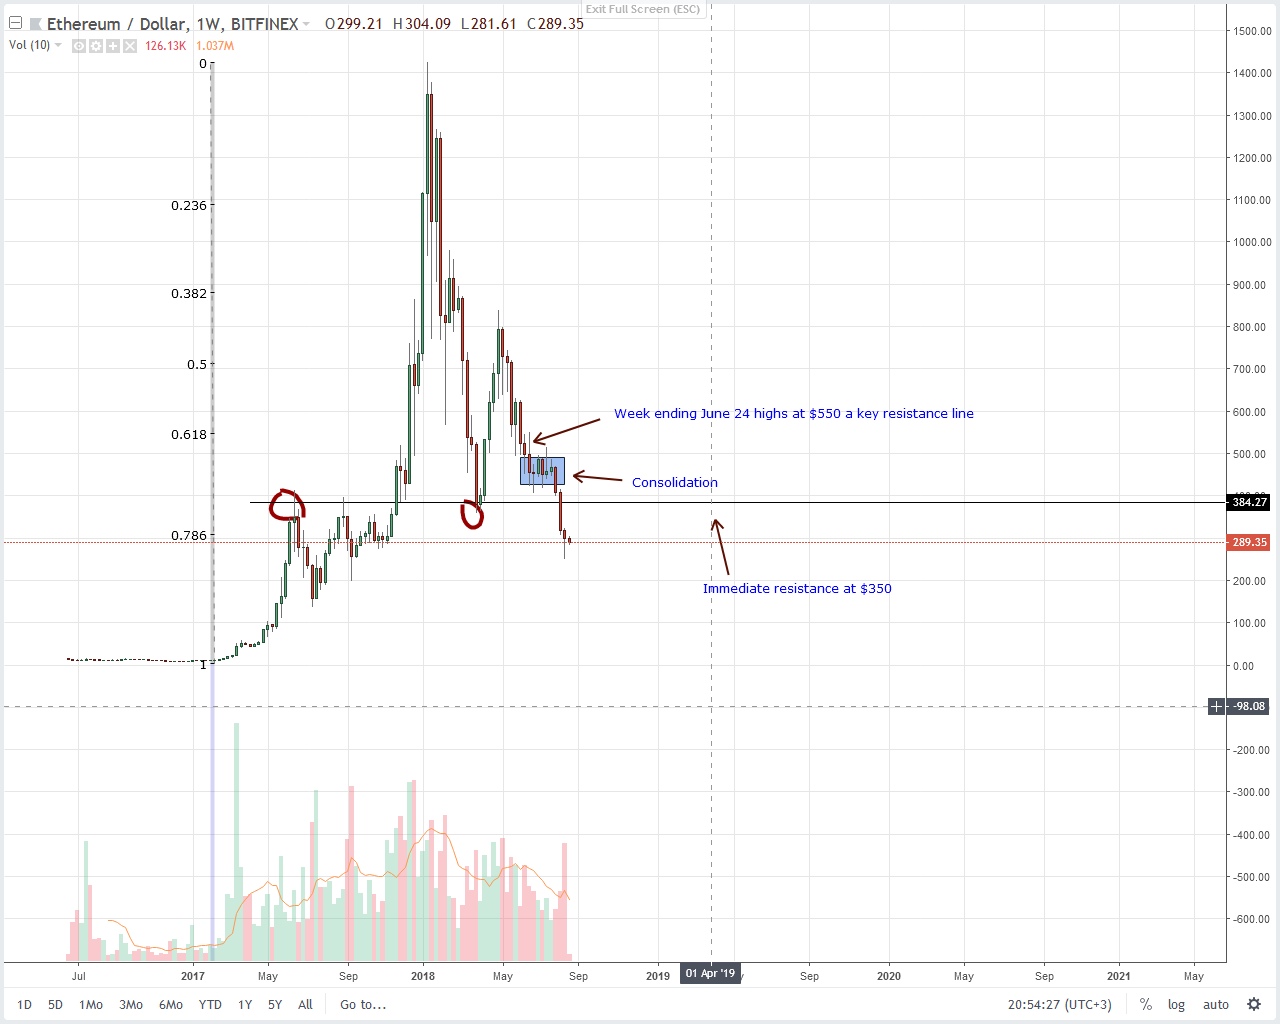 Ethereum (ETH) Technical Analysis